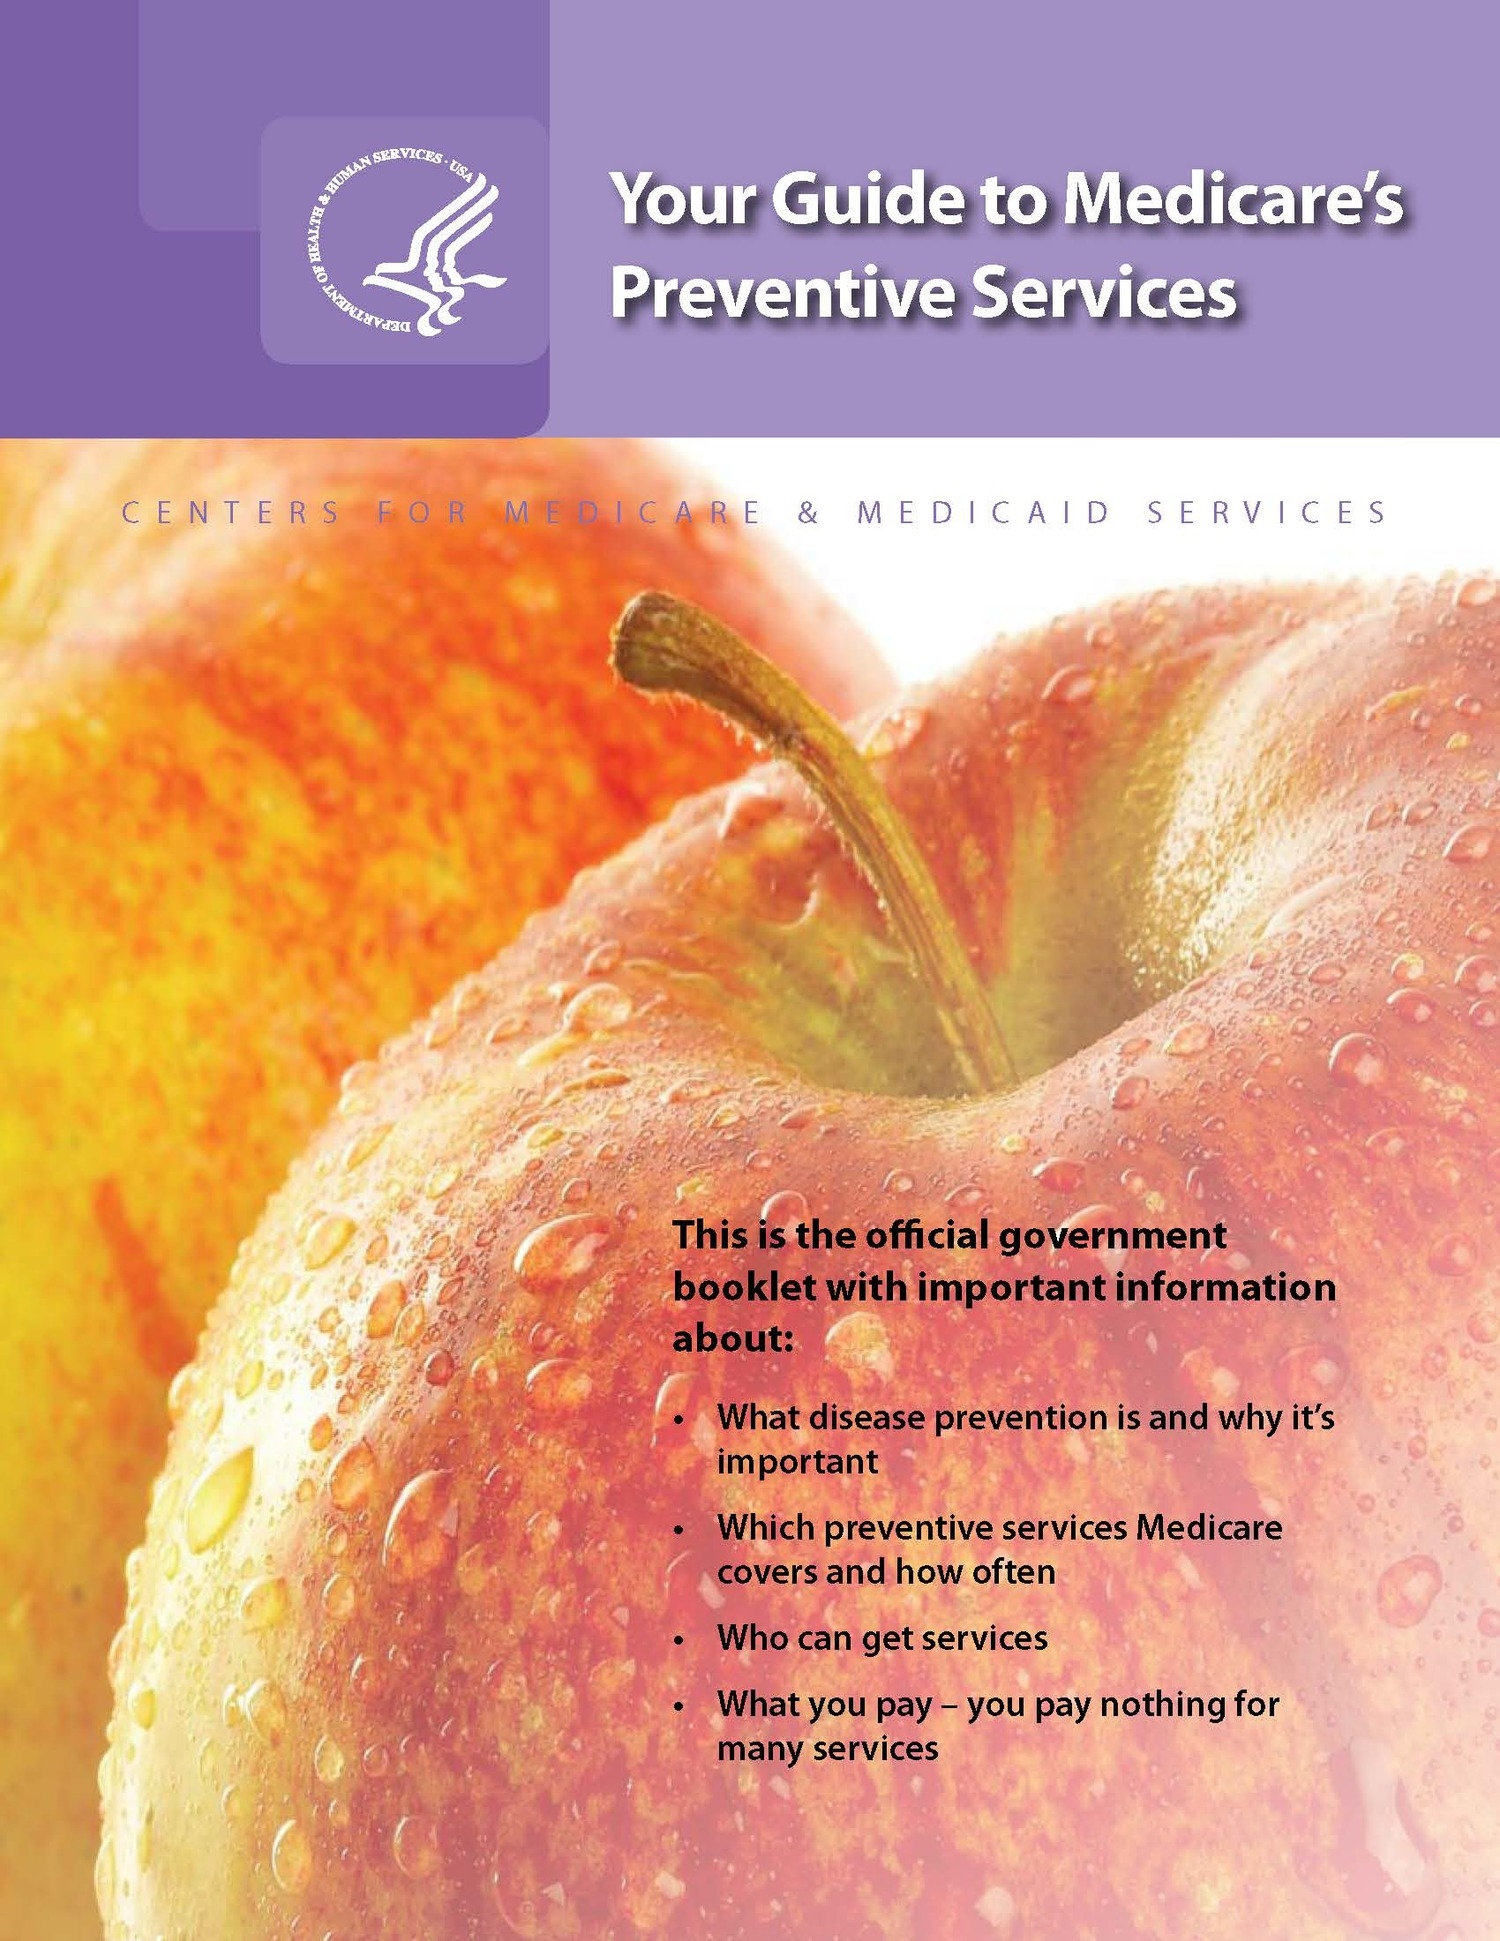 Your Guide to Medicare Preventive Services